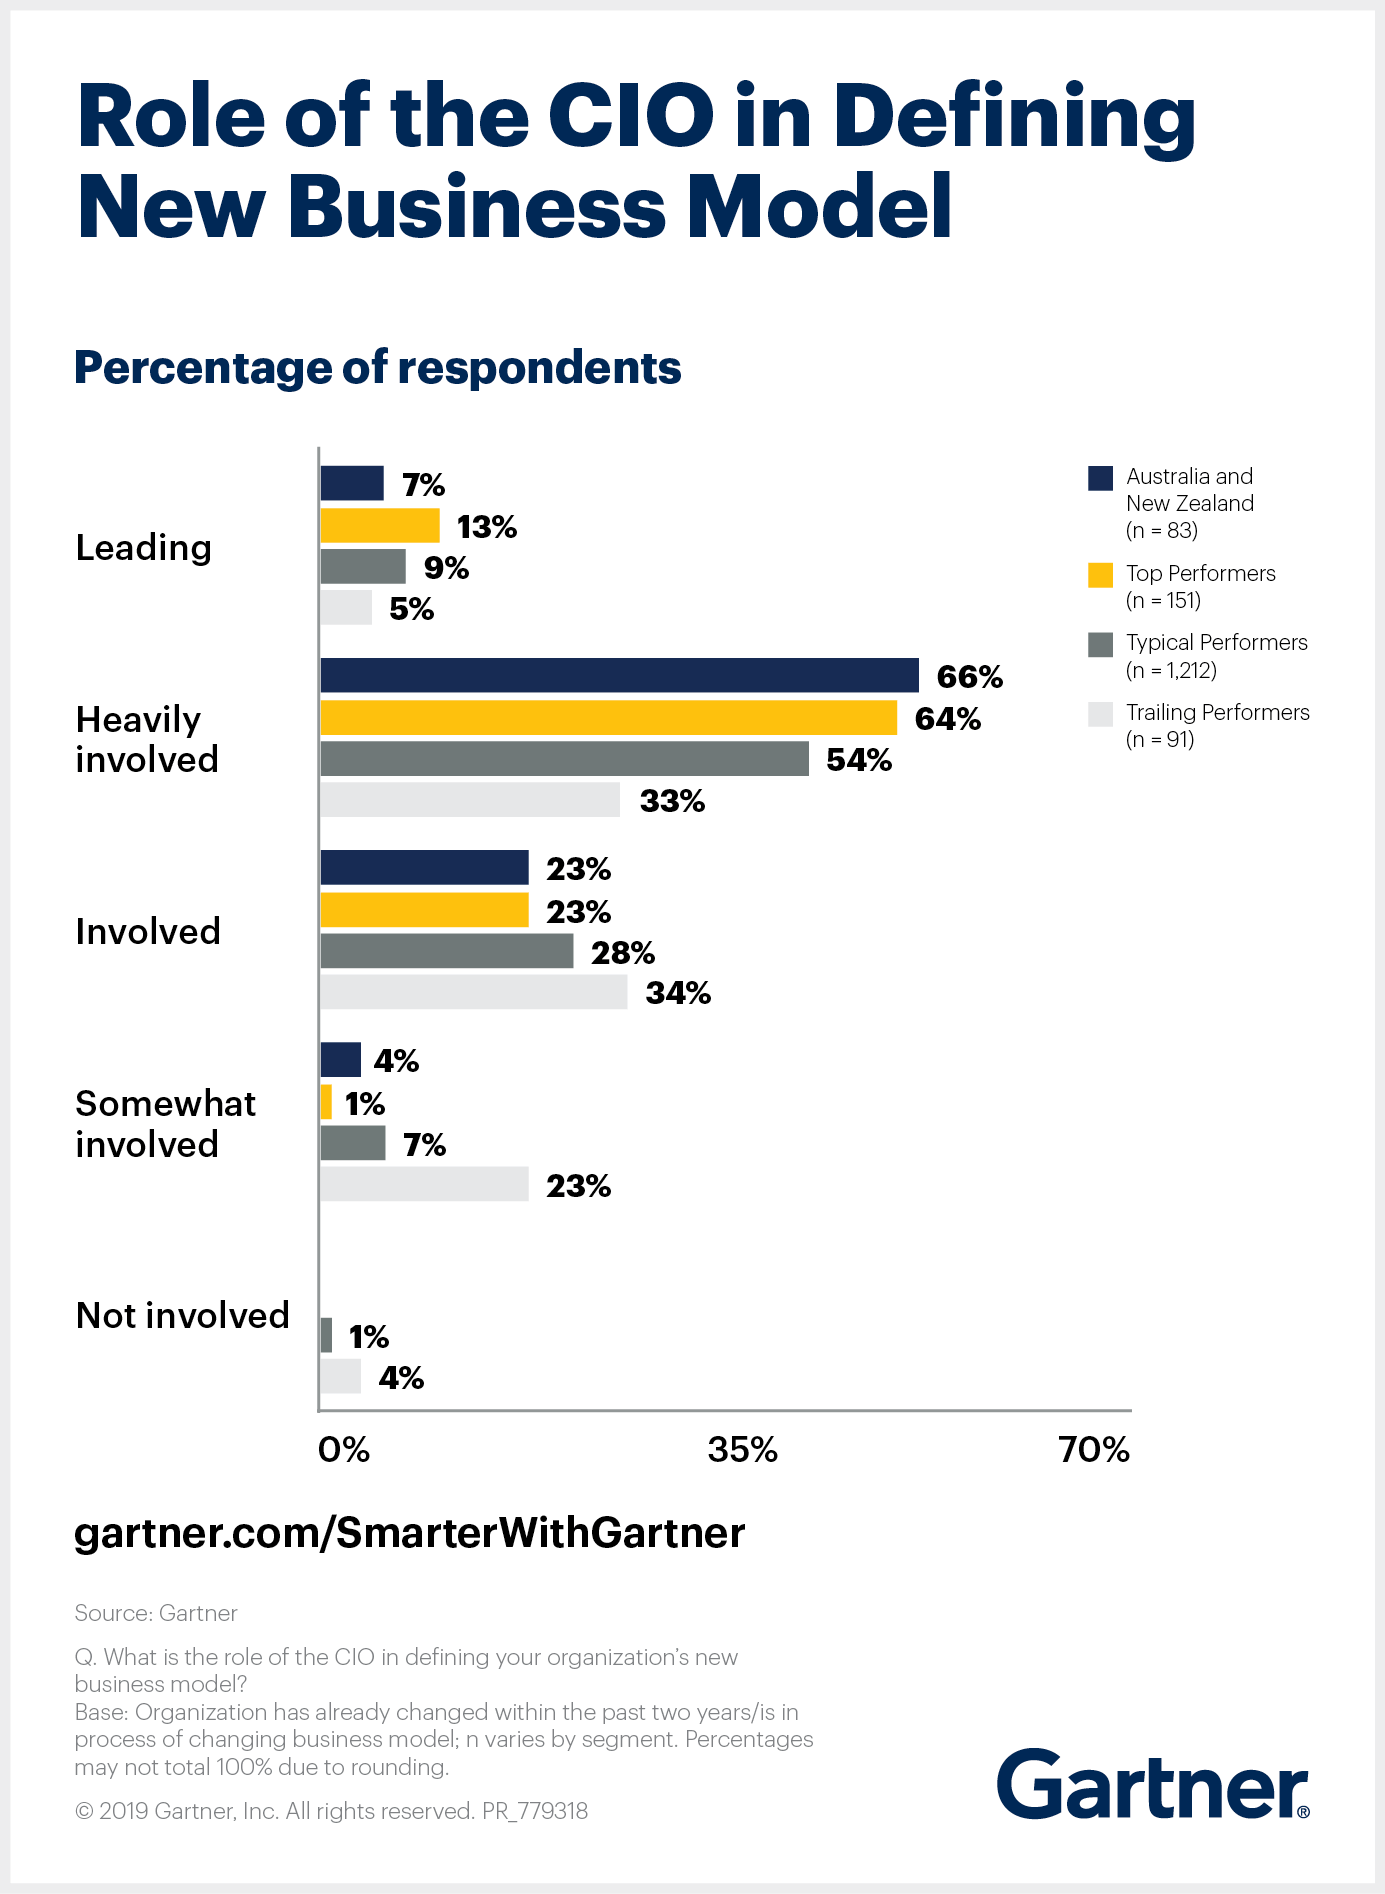 Gartner shows the role CIOs play in defining new business models.